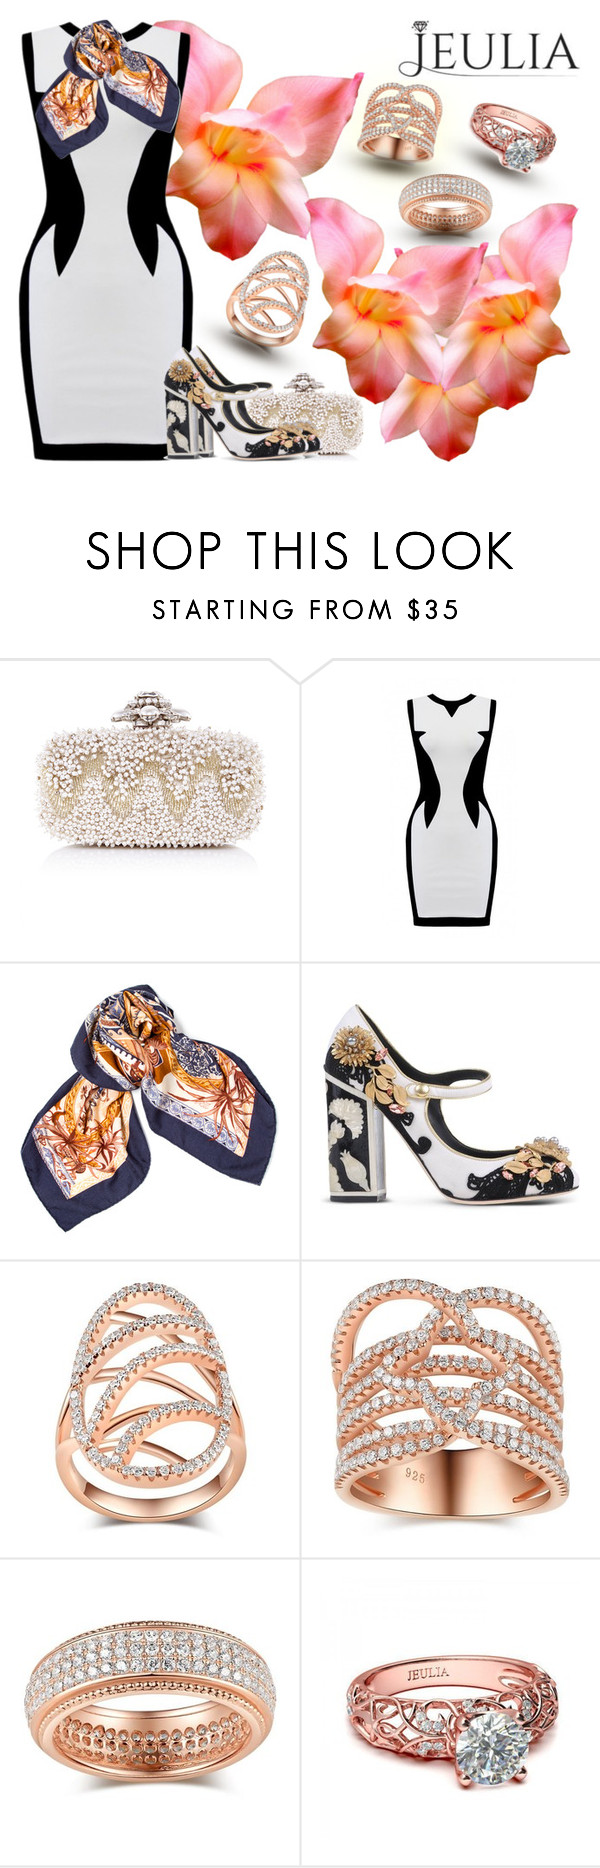 """""""The softness of the withe"""" by gabyidc ❤ liked on Polyvore featuring Oscar de la Renta, Hermès, Dolce&Gabbana, women's clothing, women's fashion, women, female, woman, misses and juniors"""